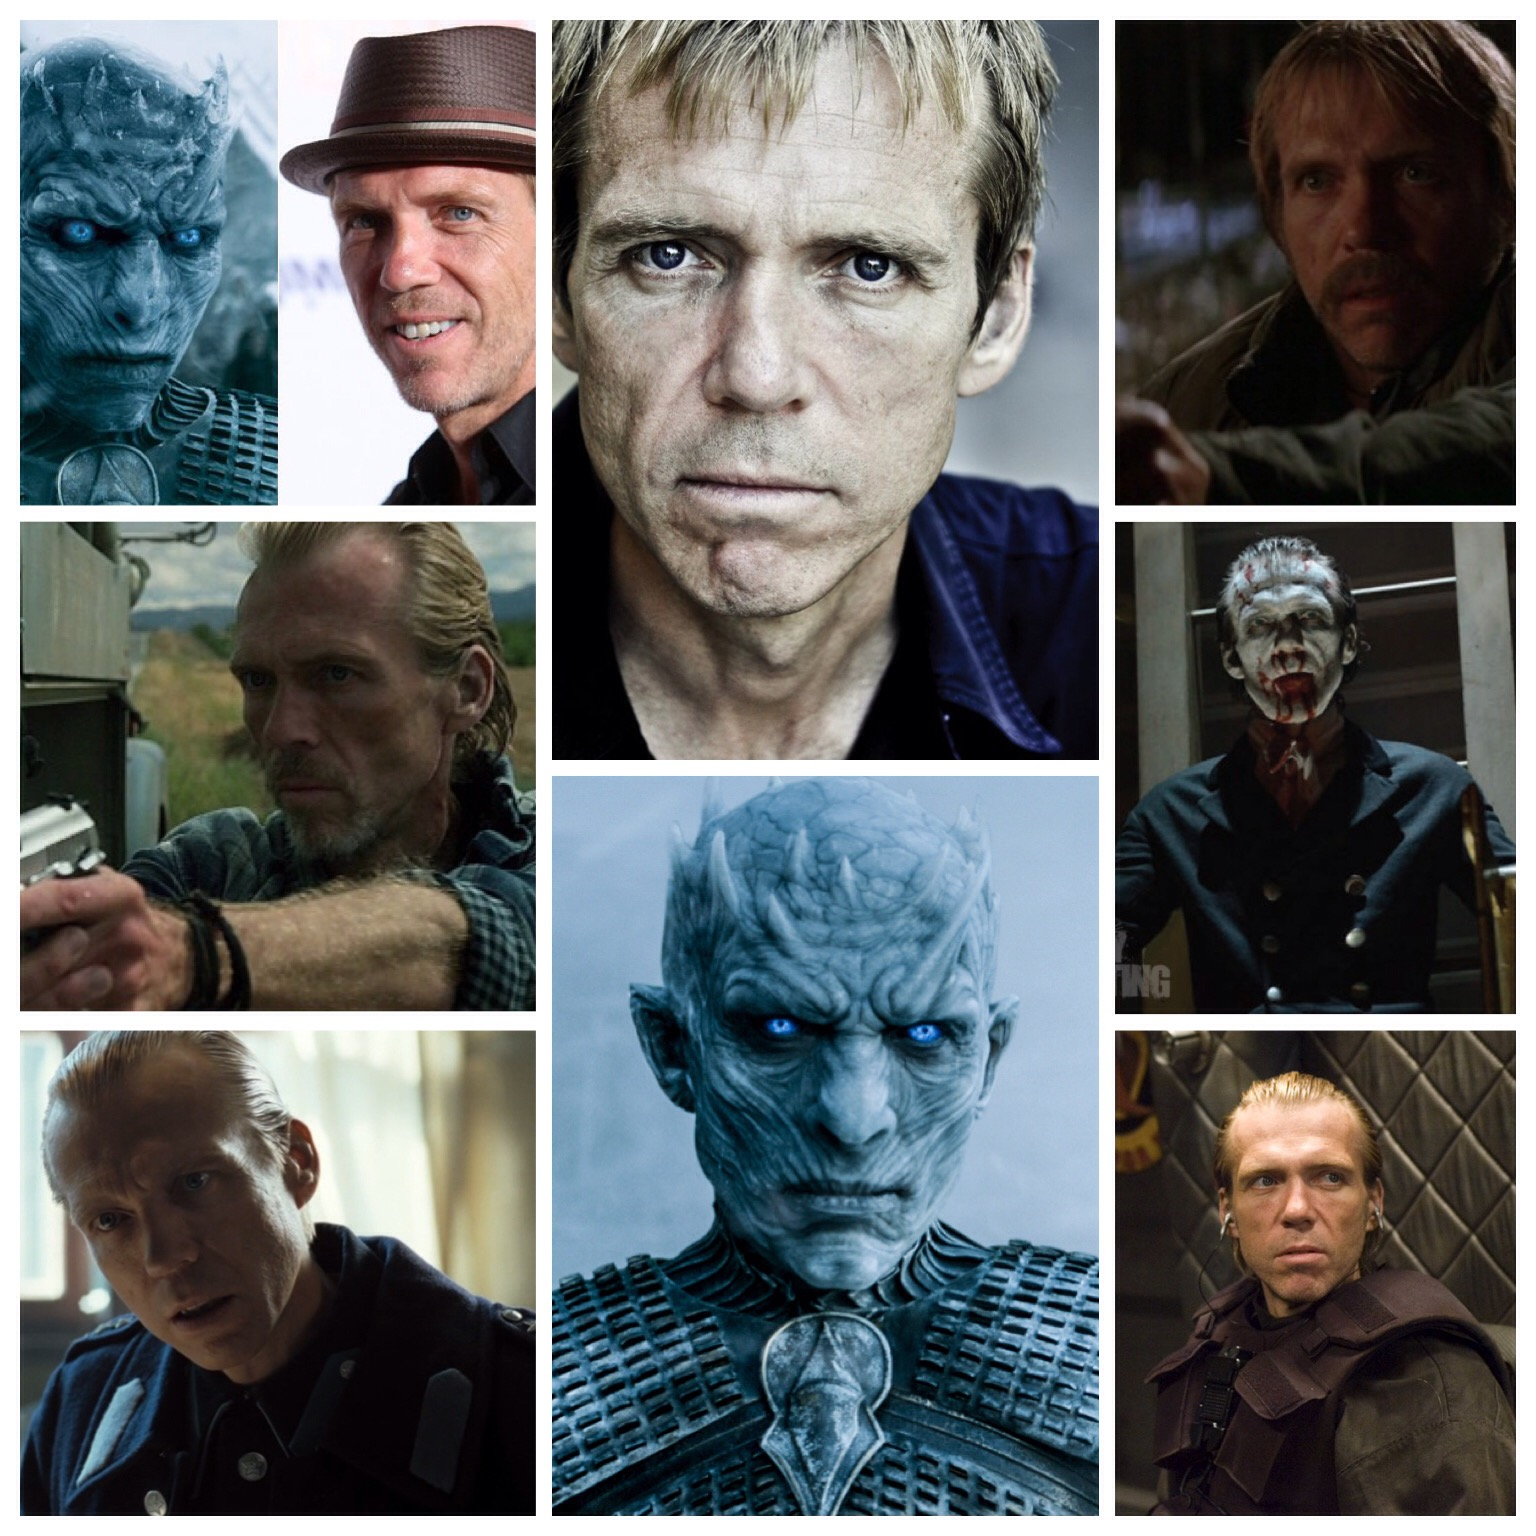 richard brake wikipediarichard brake game of thrones, richard brake instagram, richard brake twitter, richard brake, richard brake imdb, richard brake doom, richard brake actor, richard brake timothy darrow, richard brake cannibal in the jungle, richard brake batman begins, richard brake white walker, richard brake night king, richard brake wiki, richard brake thor, richard brake 31, richard brake height, richard brake wikipedia, richard brake san antonio, richard brake net worth, richard brake doom head